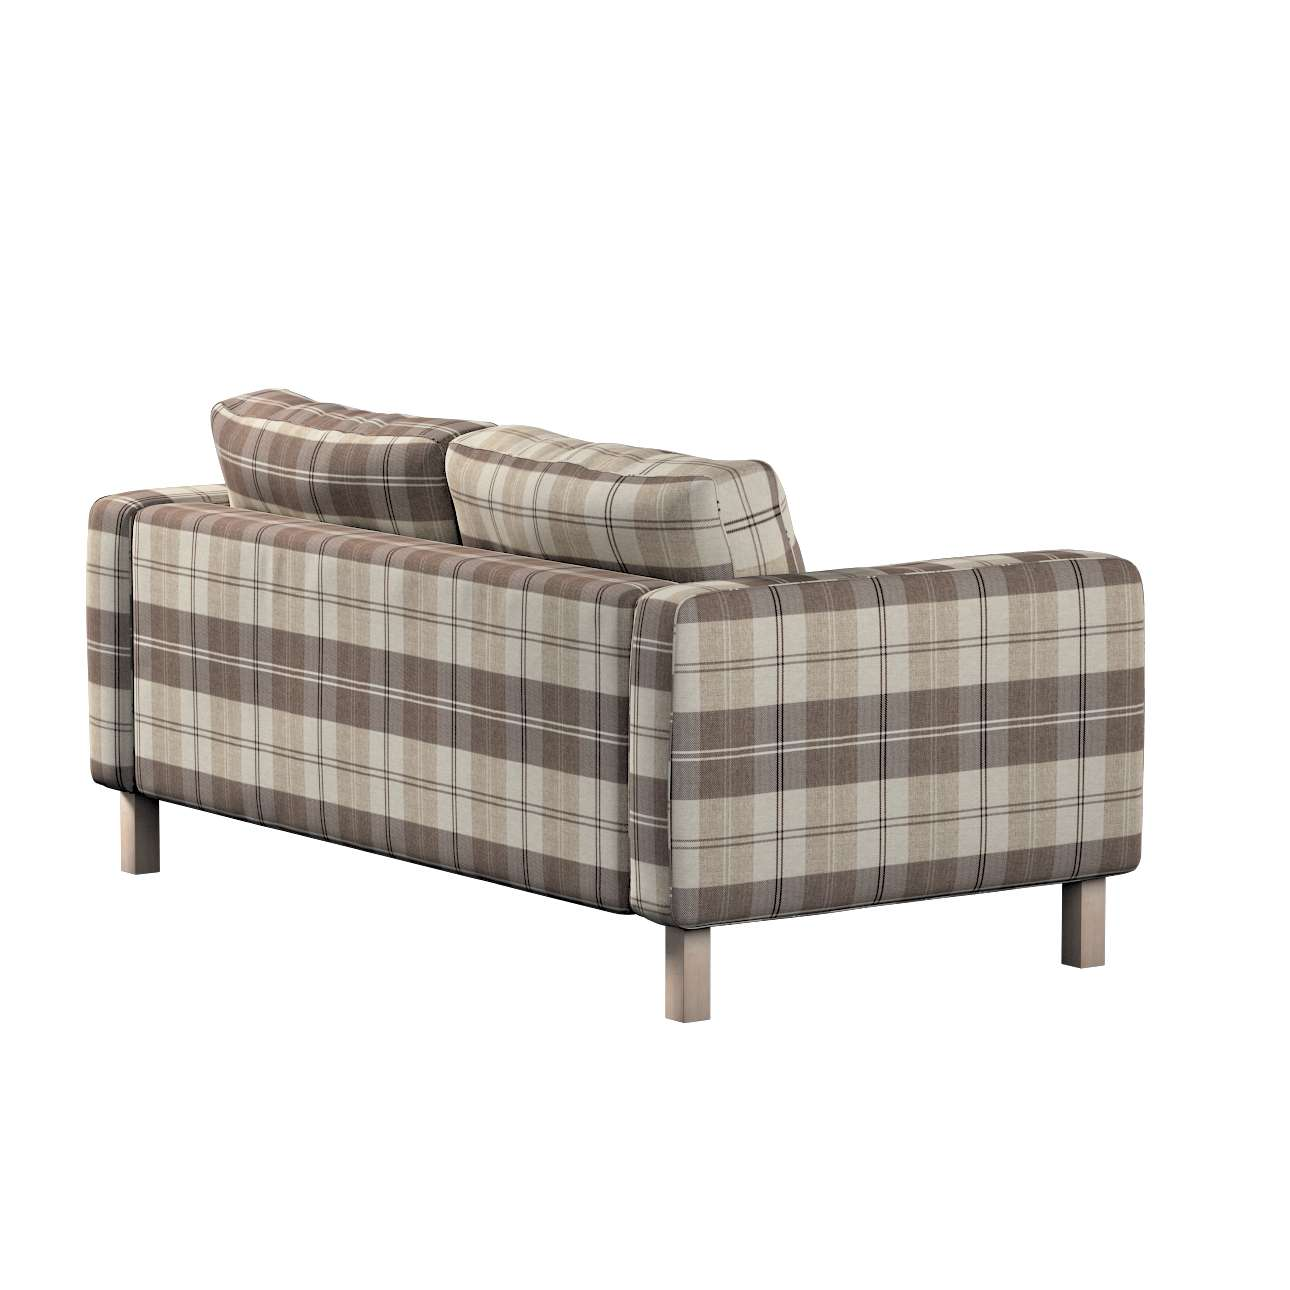 Karlstad 2-seater sofa cover in collection Edinburgh, fabric: 115-80